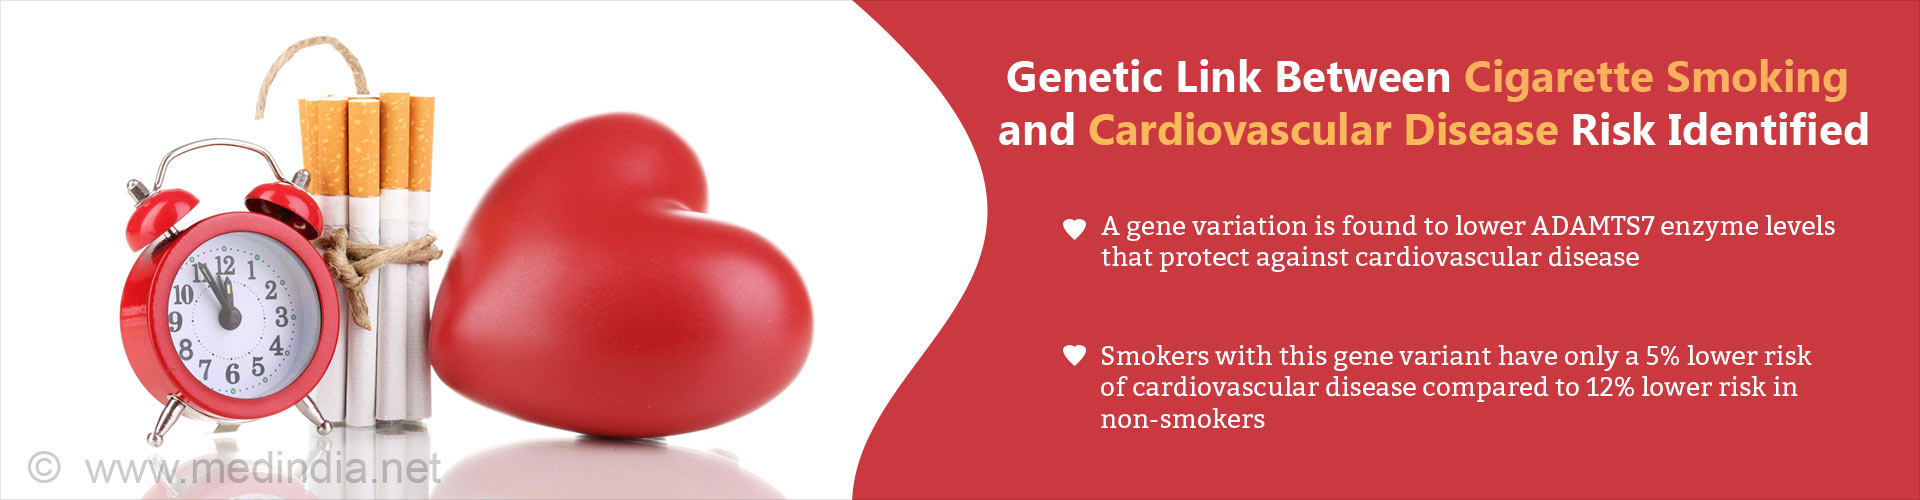 Gene Variation Linked to Cardiovascular Disease in Smokers Identified